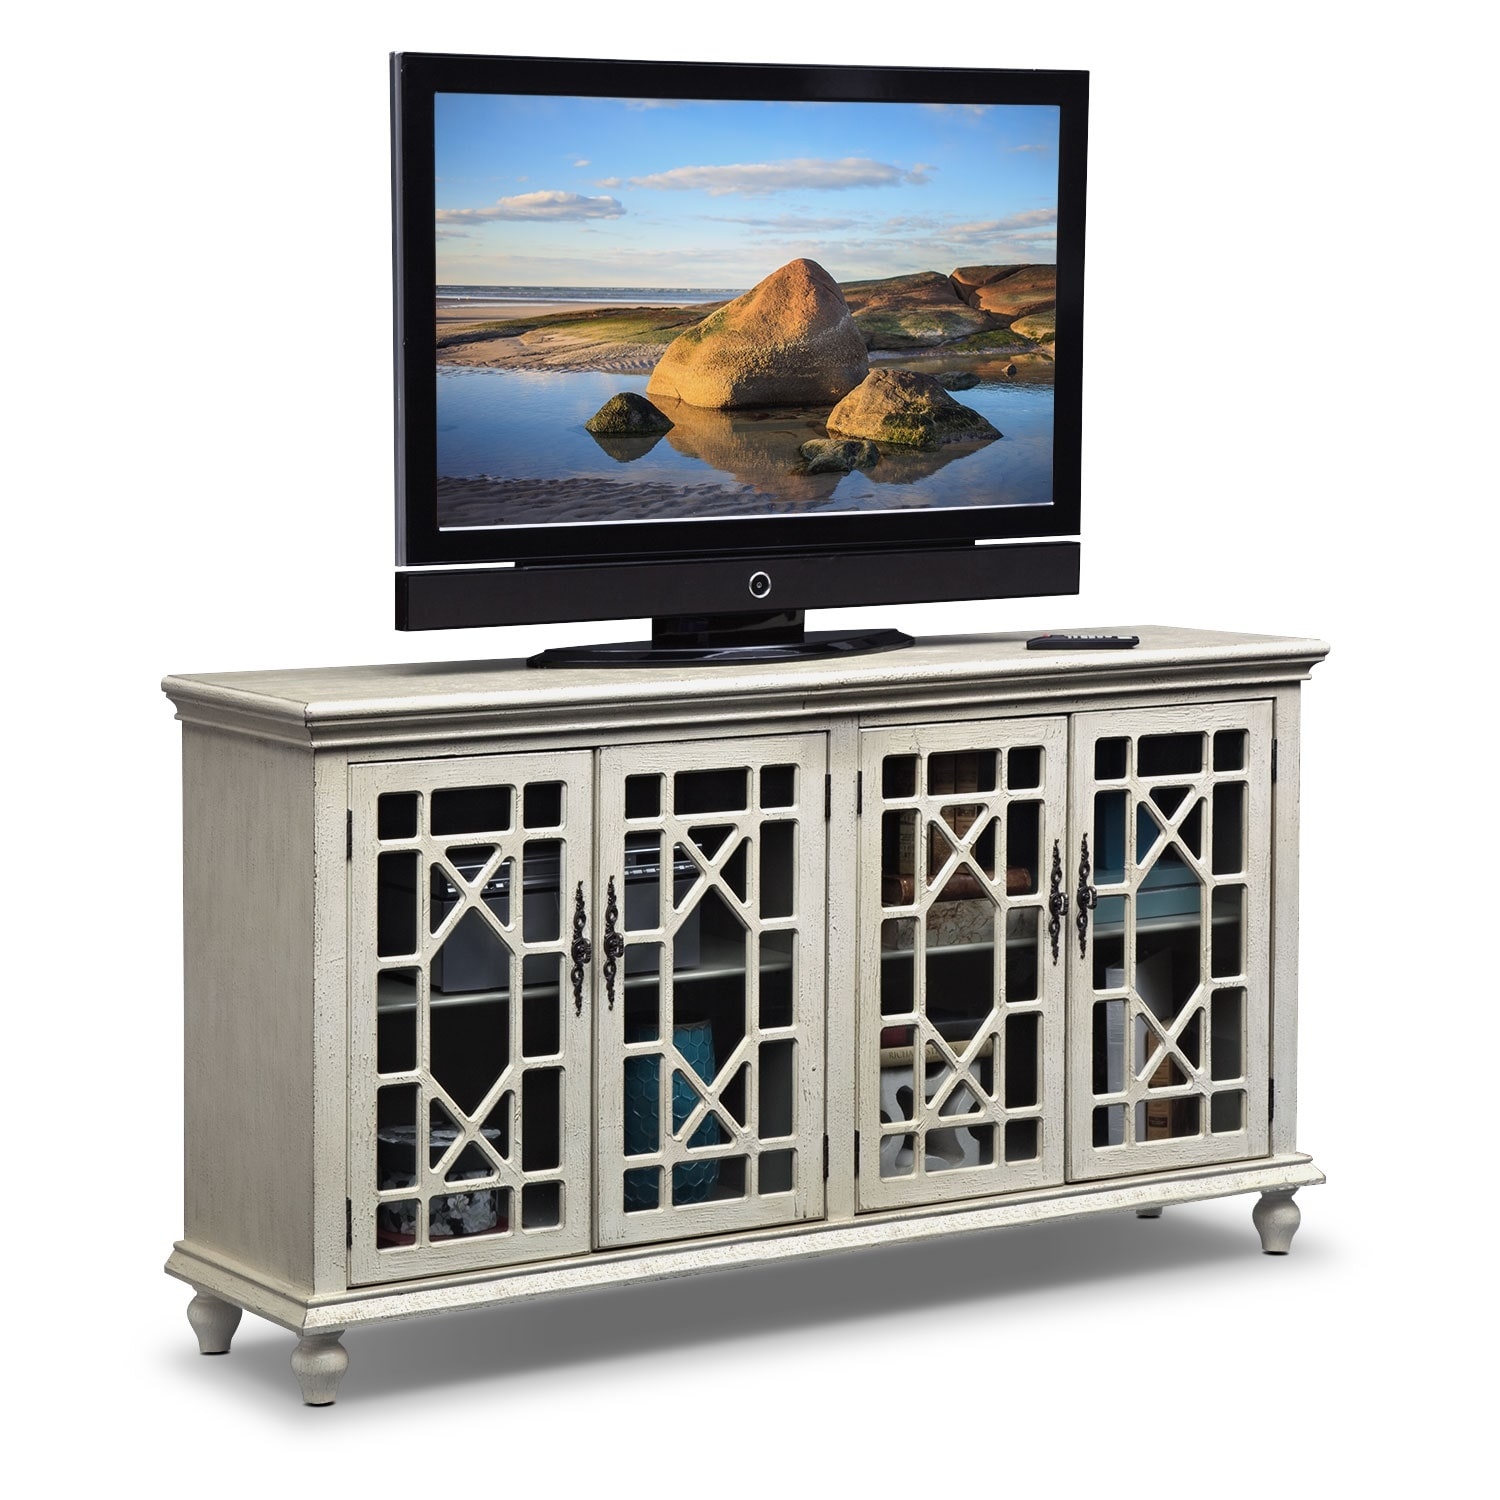 Grenoble Media Credenza Ivory Value City Furniture And Mattresses